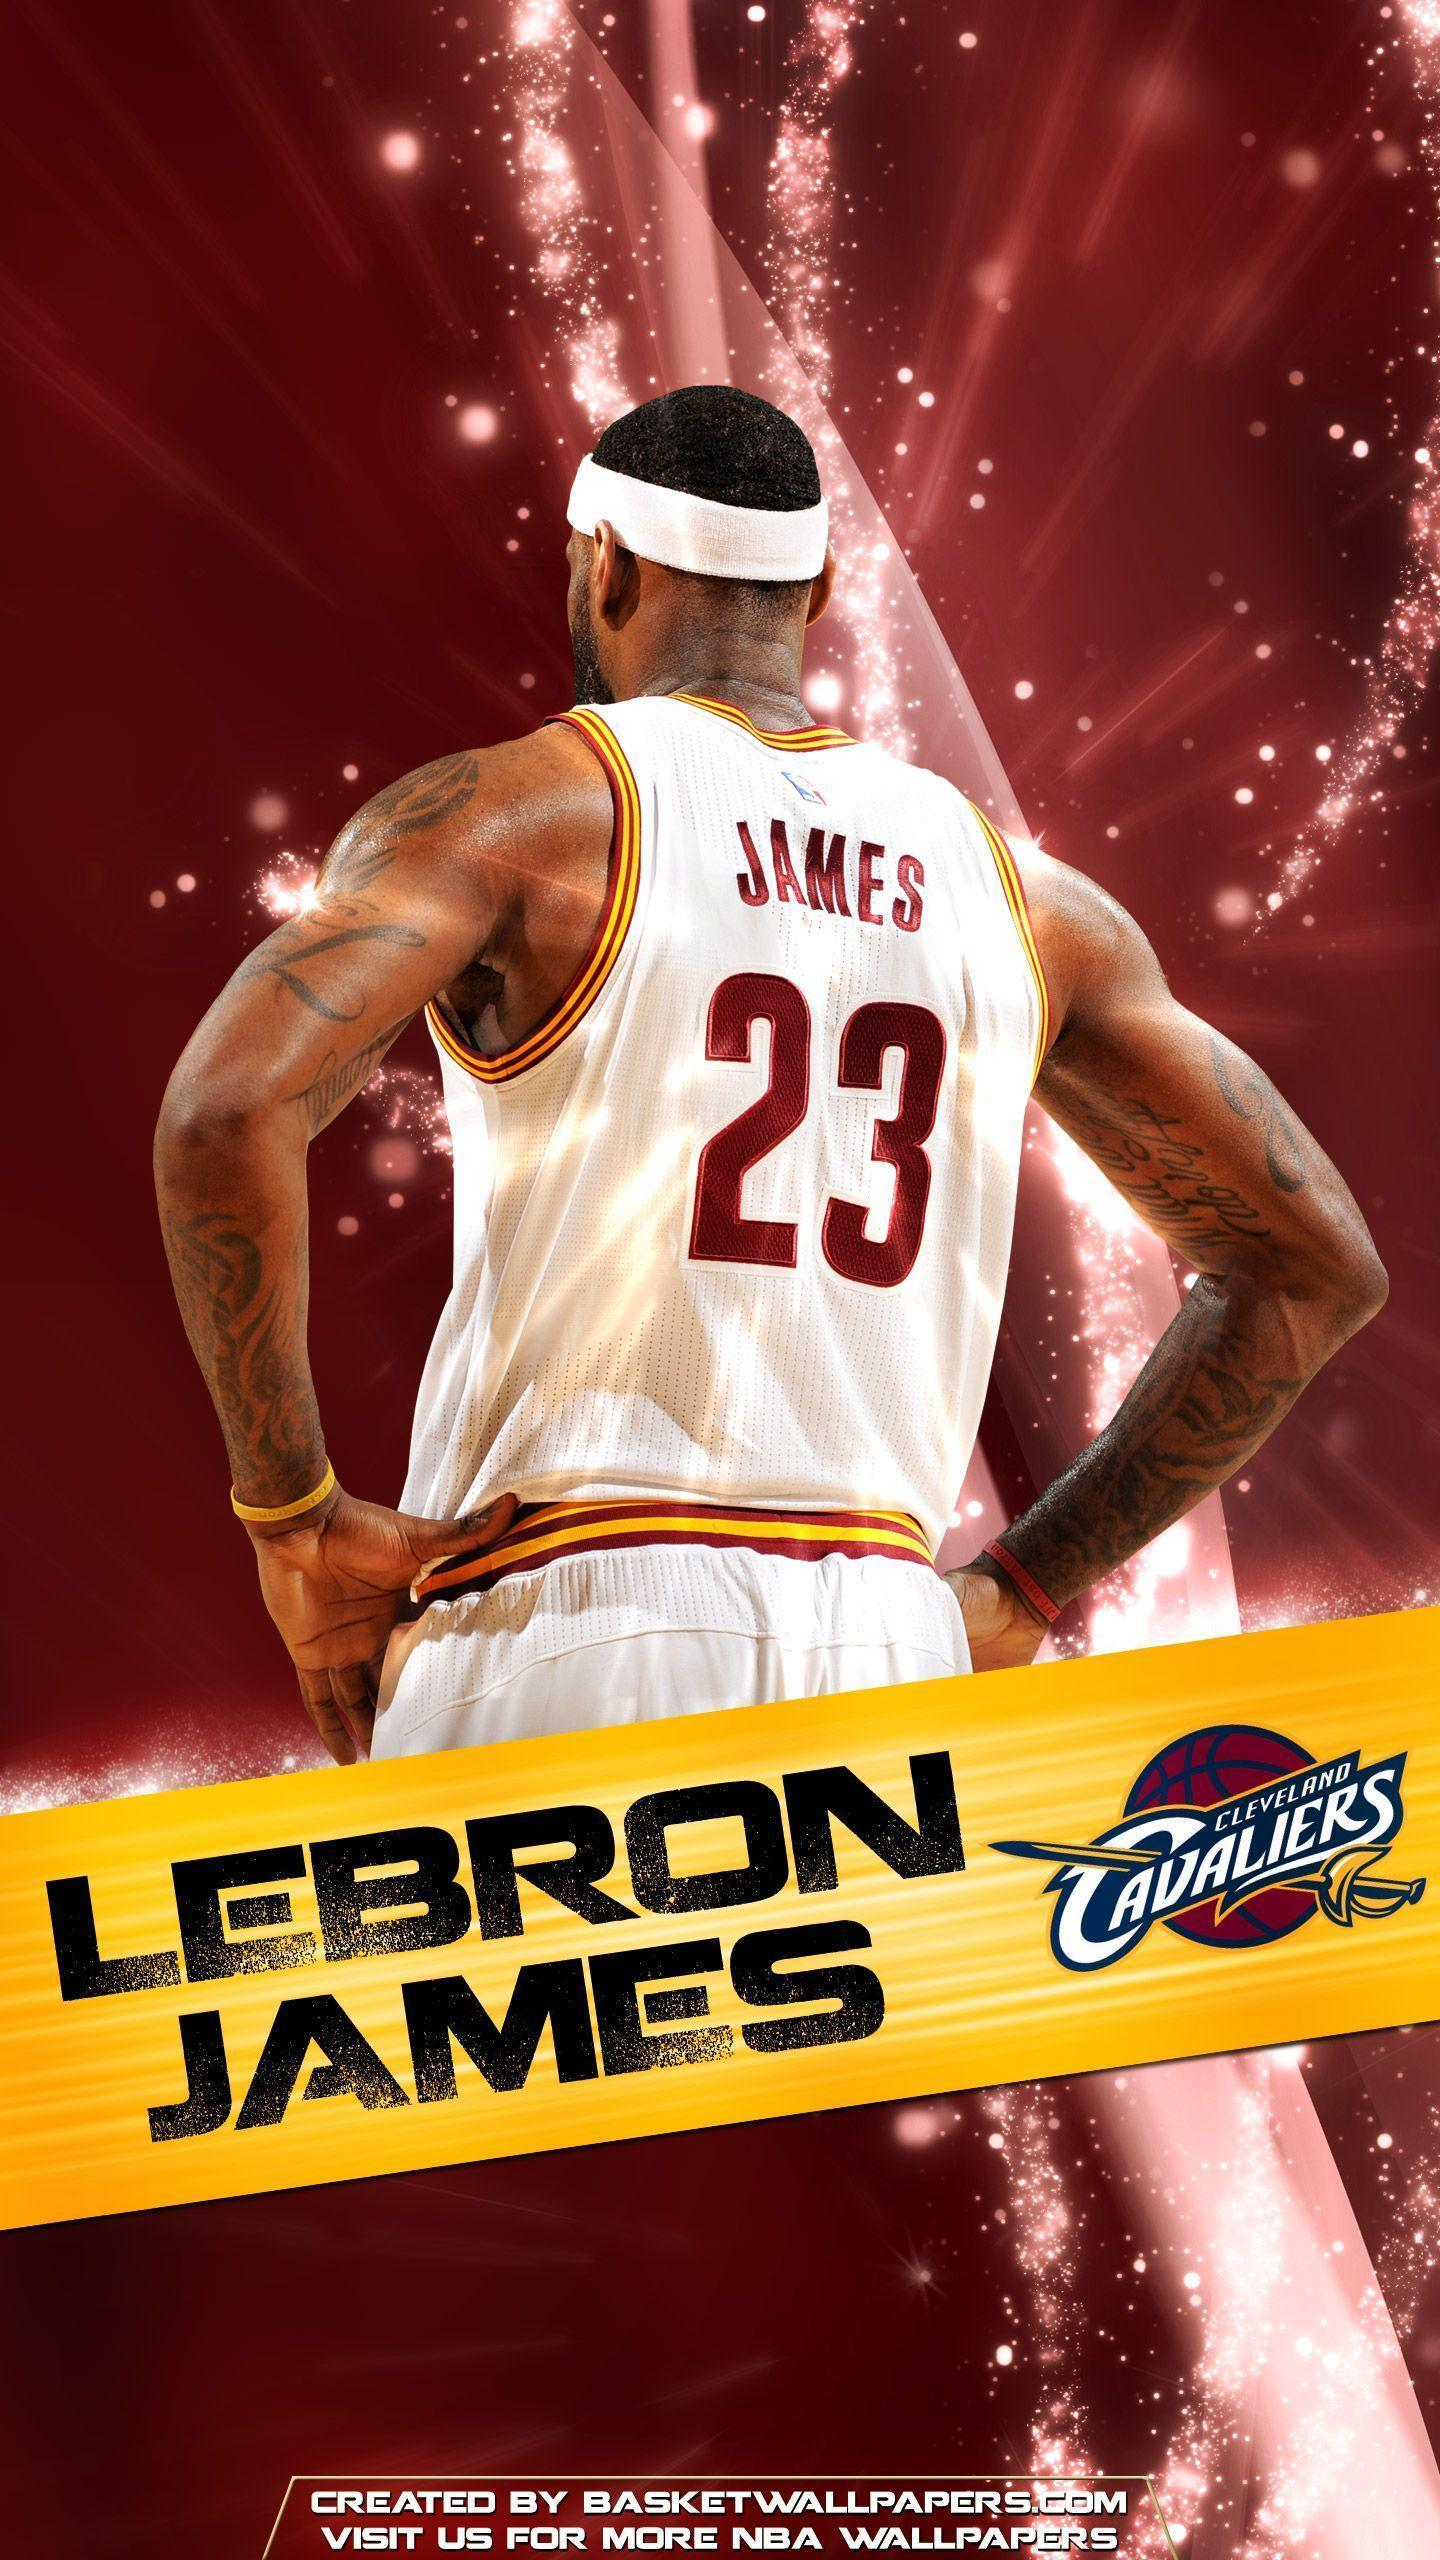 Lebron James Logo Wallpapers - Wallpaper Cave